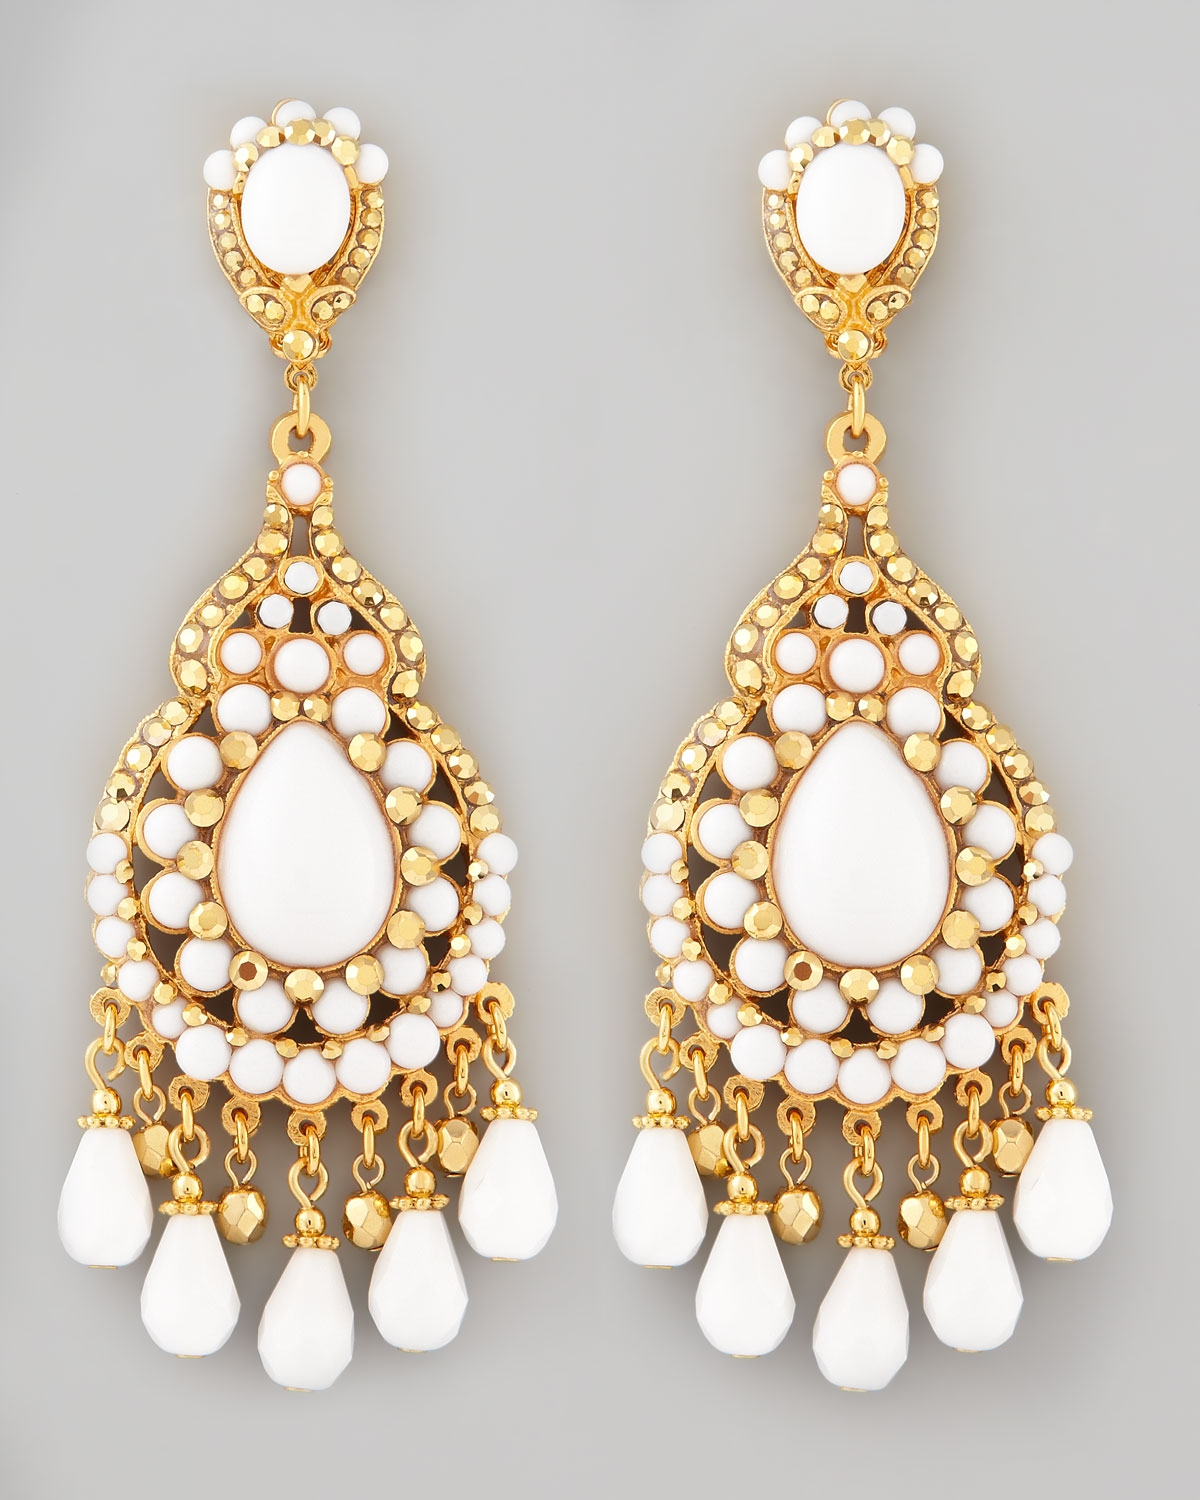 Clip On Chandelier Earrings Spectacular In Decorating Home Ideas In Clip On Chandeliers (View 18 of 25)